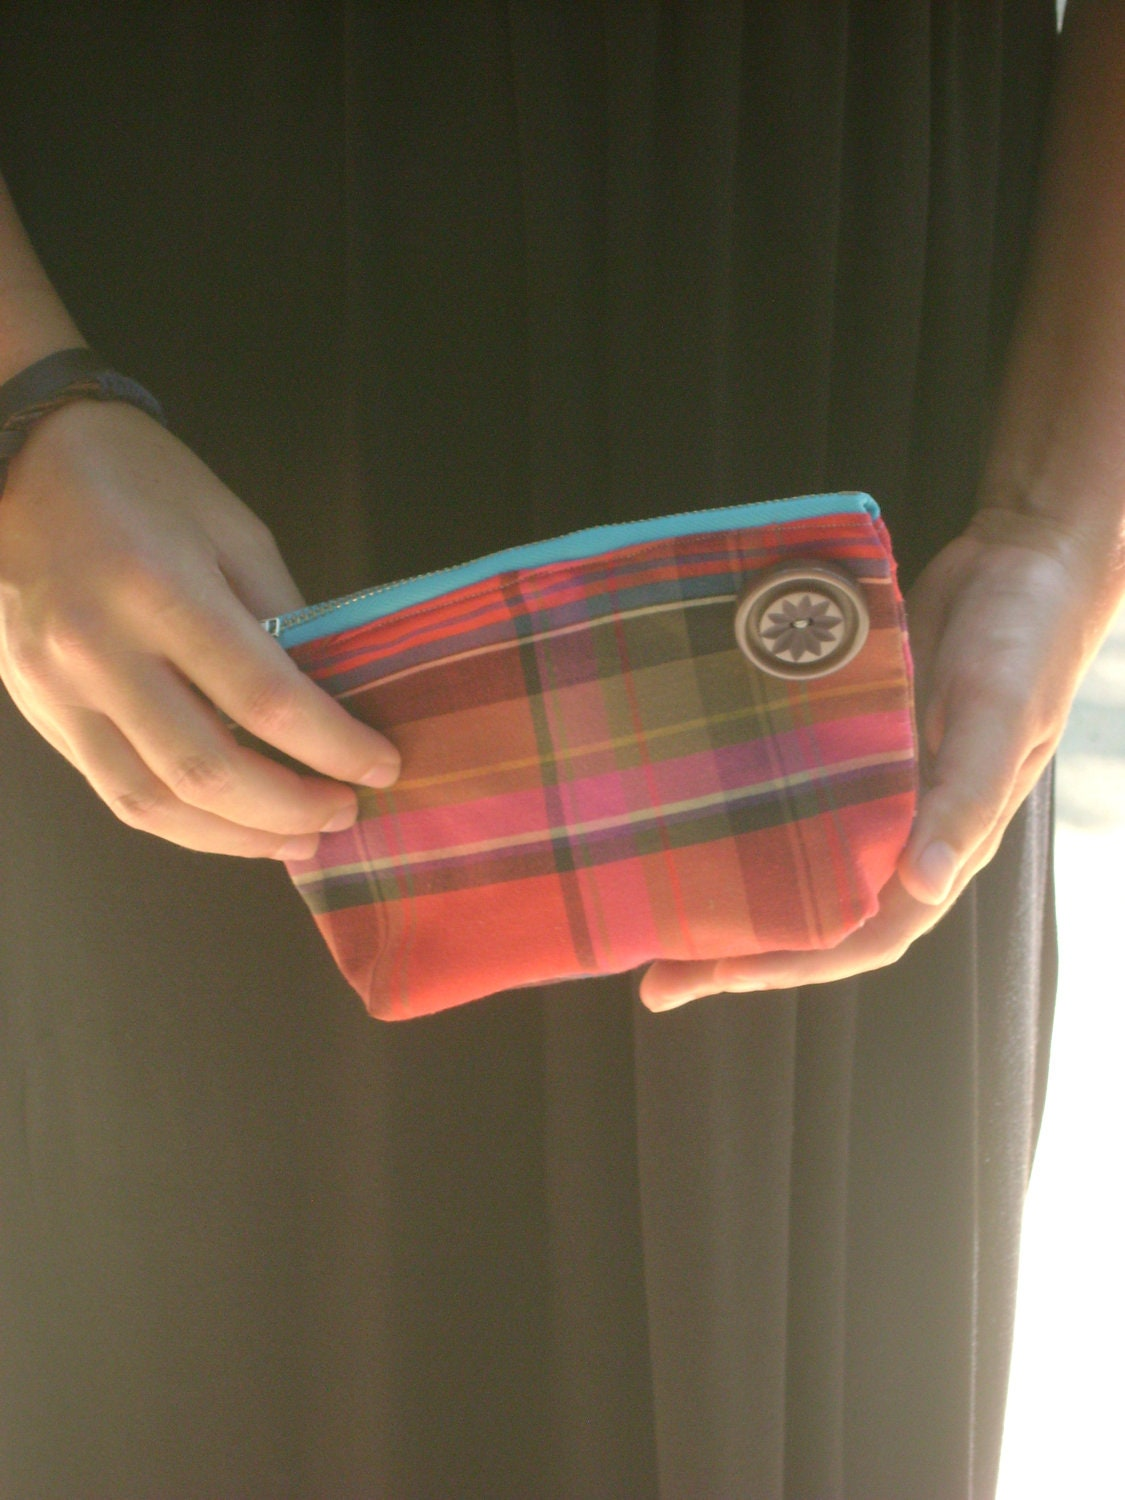 Red, Yellow, and Navy Make Up/Jewelry Pouch with Teal Zipper